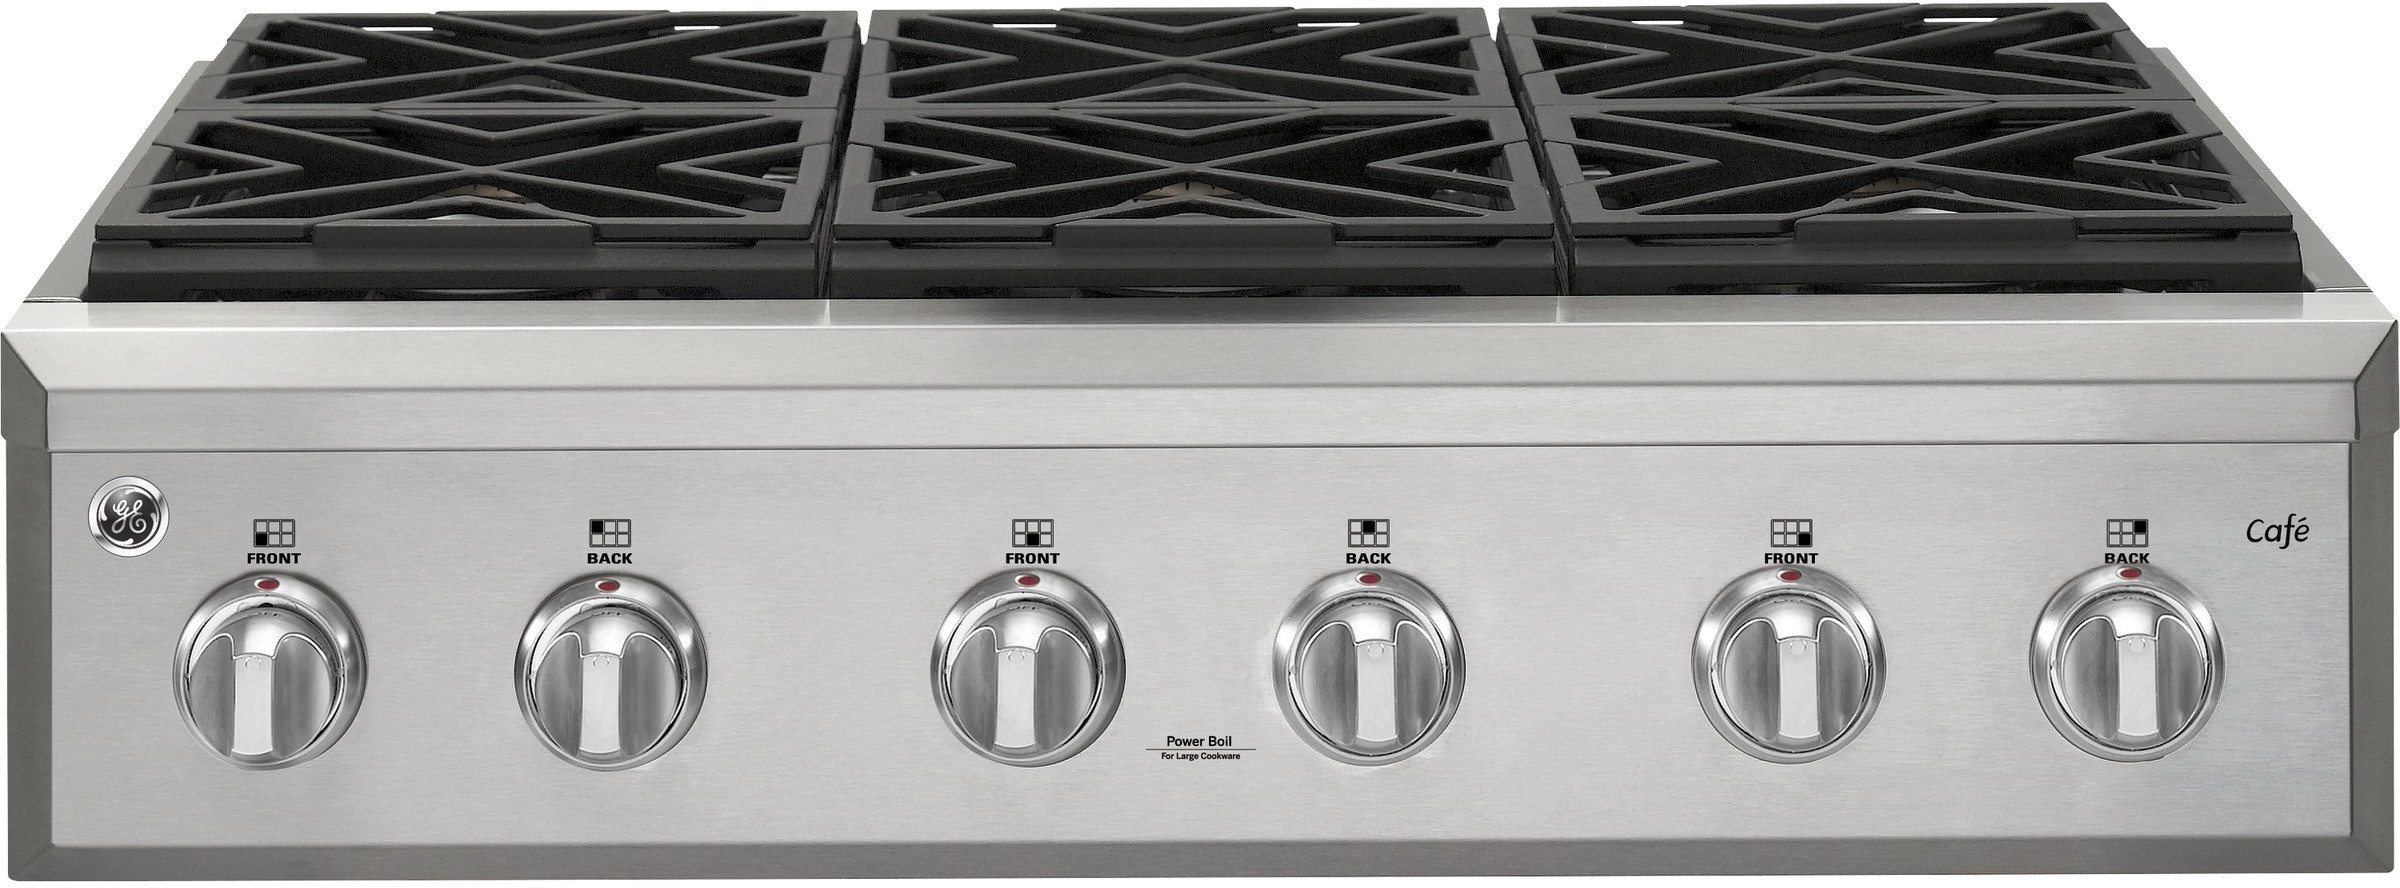 Ge Cgu366sehss 36 Inch Natural Gas Rangetop With 6 Edge To